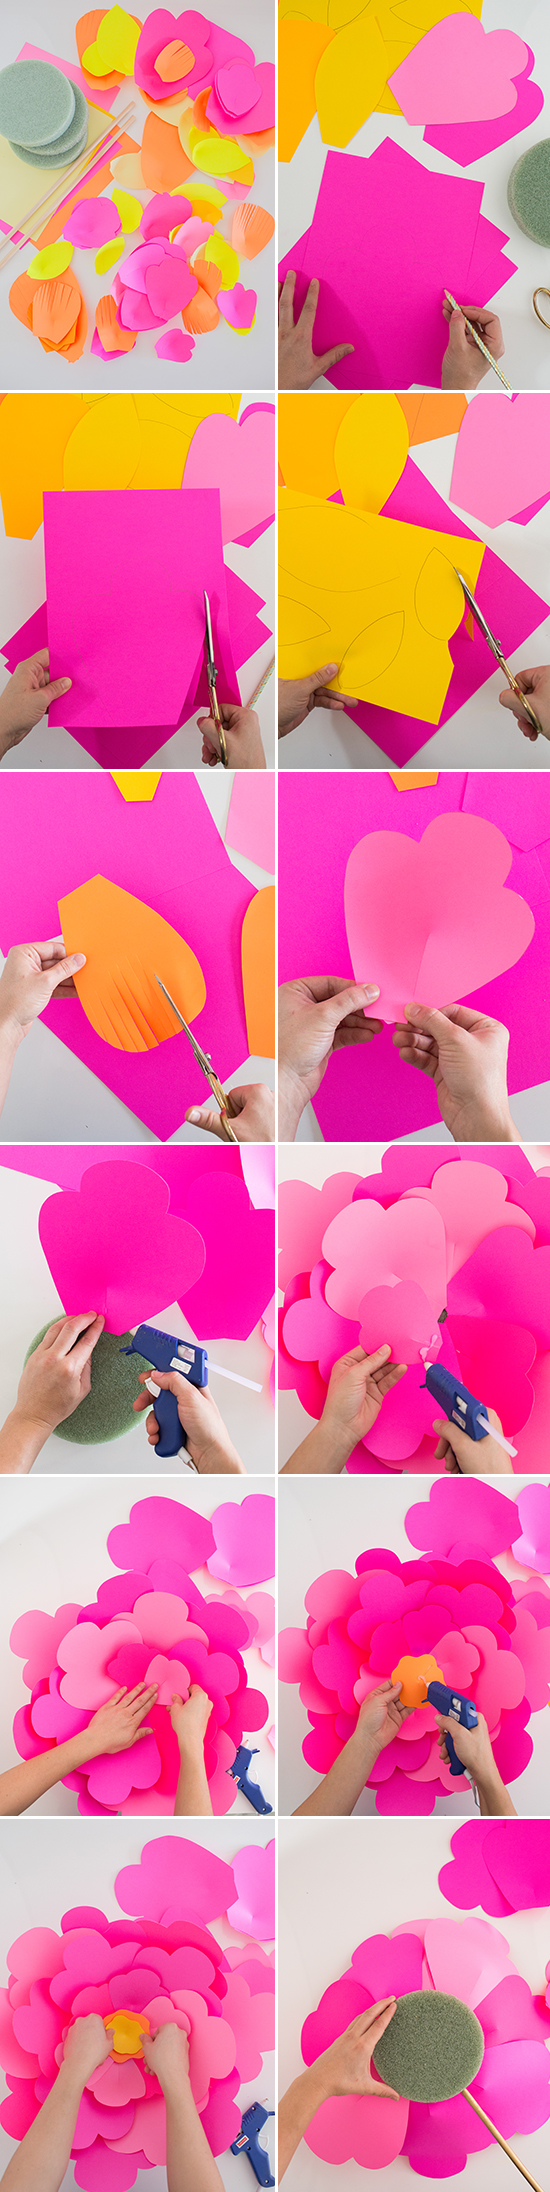 Giant-flower-diy-1-steps-blog